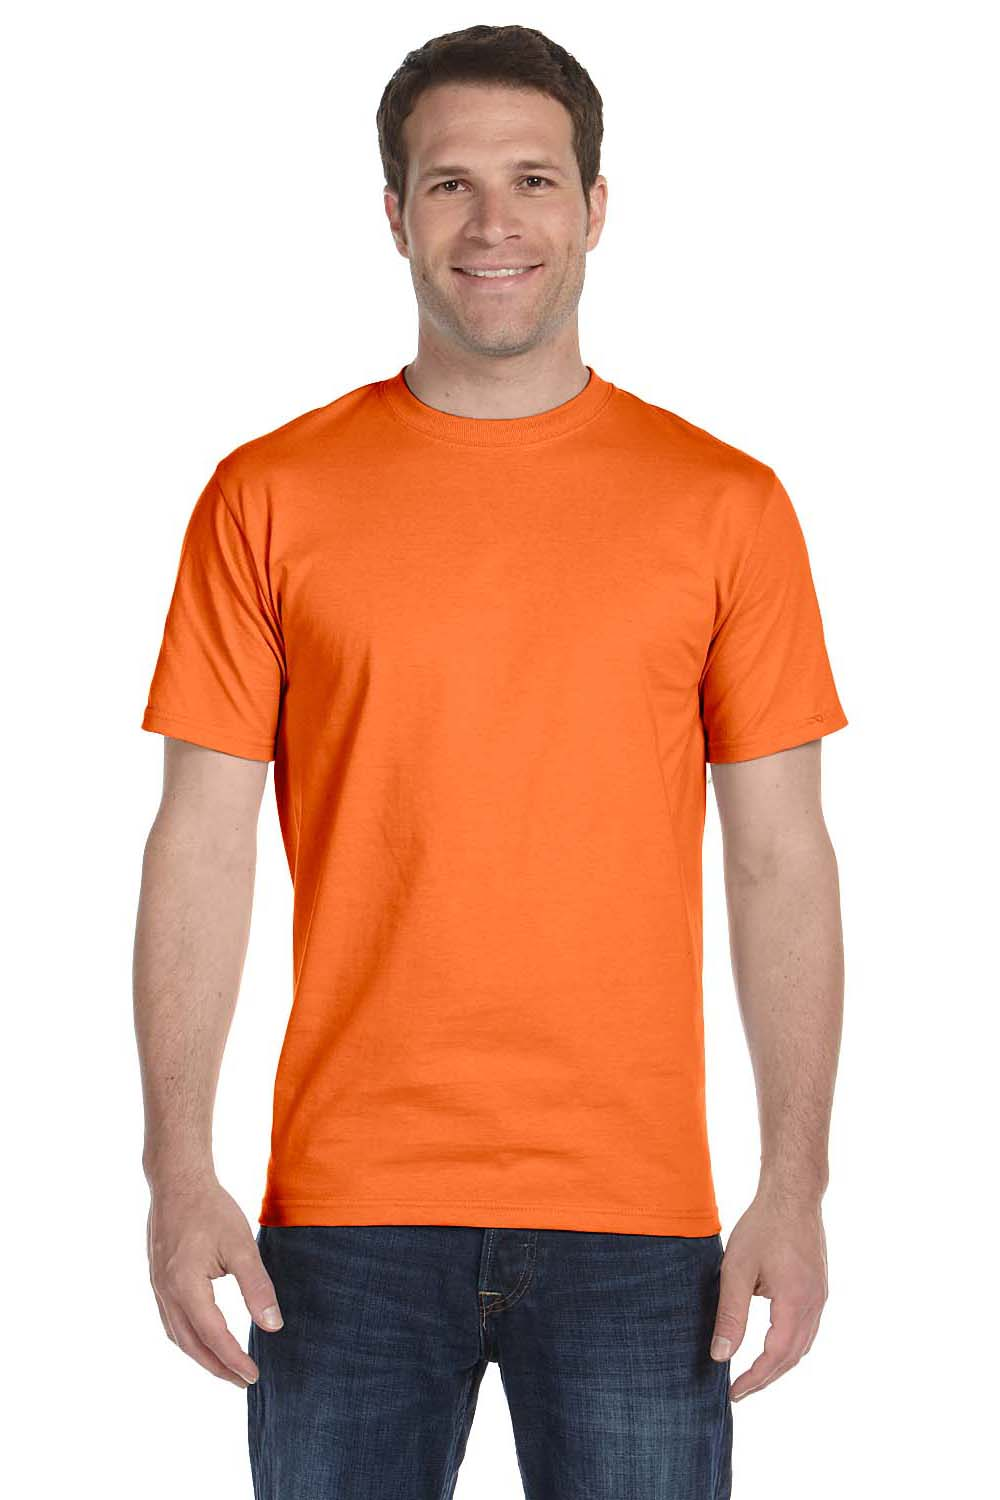 Hanes 5280 Mens ComfortSoft Short Sleeve Crewneck T-Shirt Orange Front